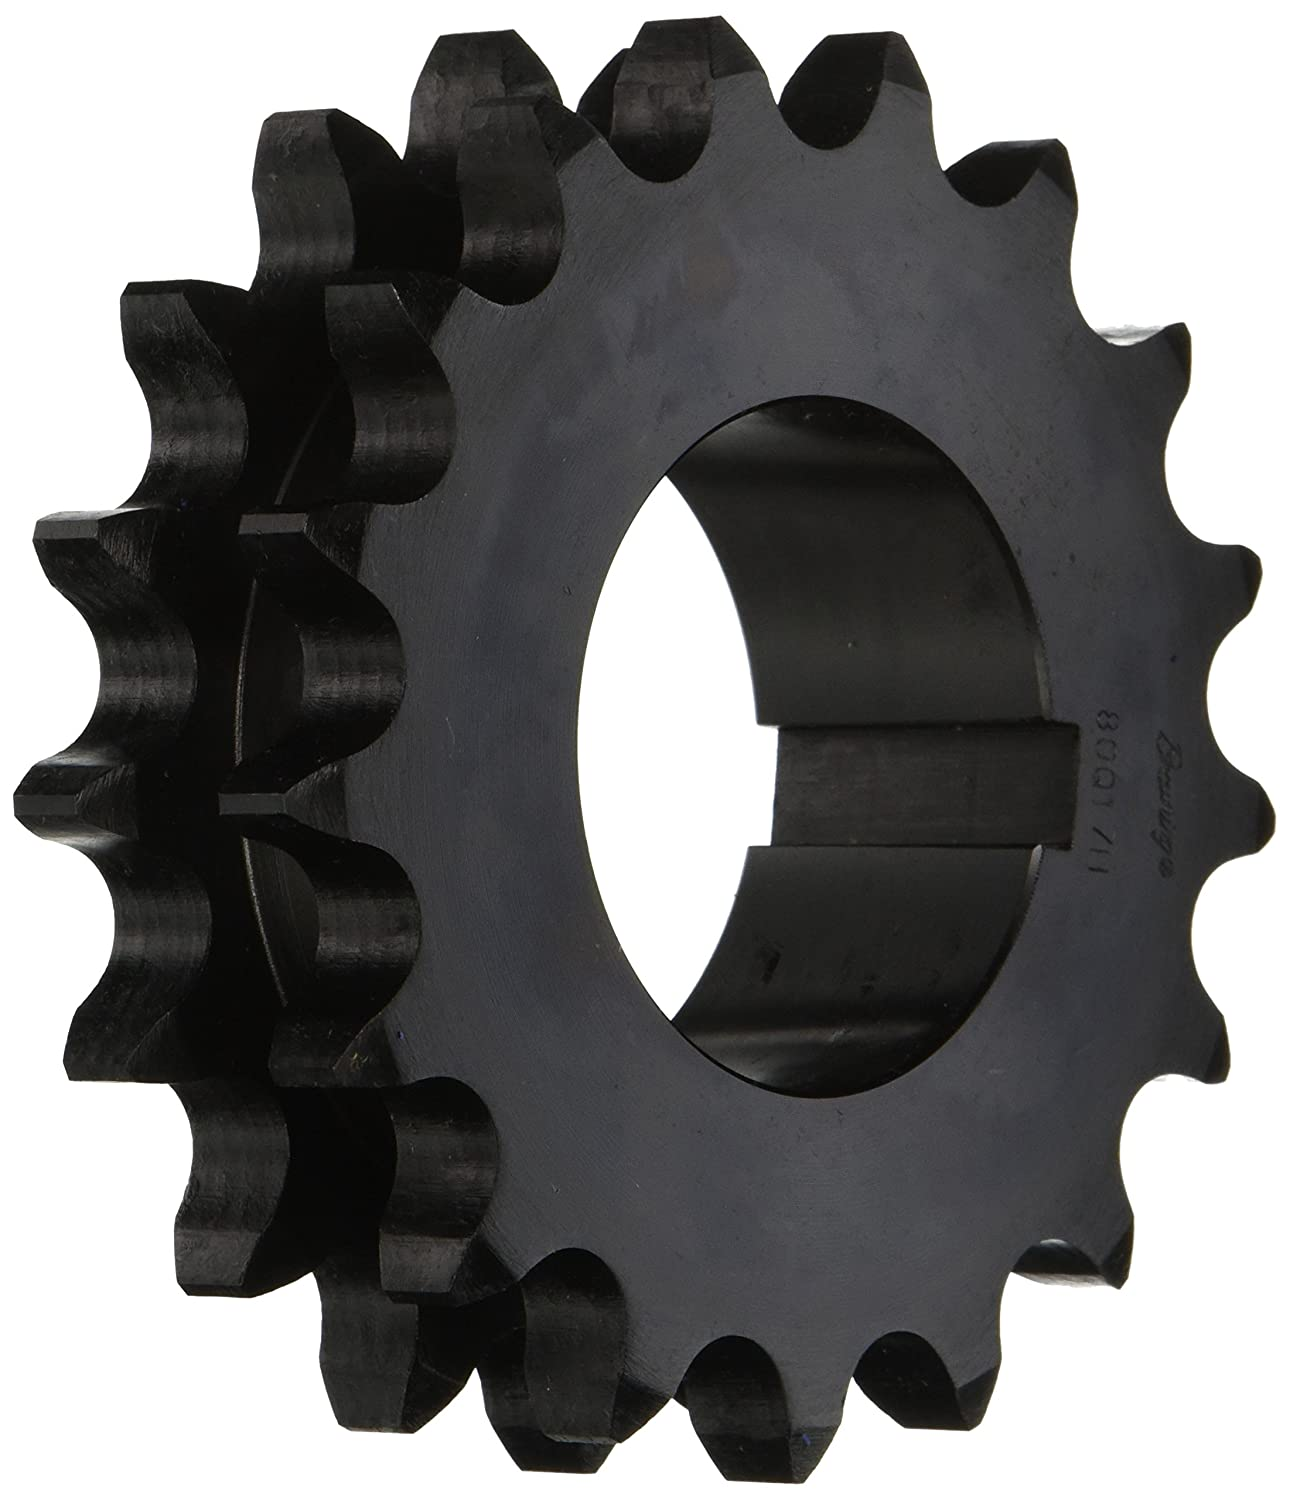 Browning D80Q17 Roller Chain Sprockets Bushed Split Taper 2 Strand Hardened Steel 80 Pitch 17 Teeth Regal